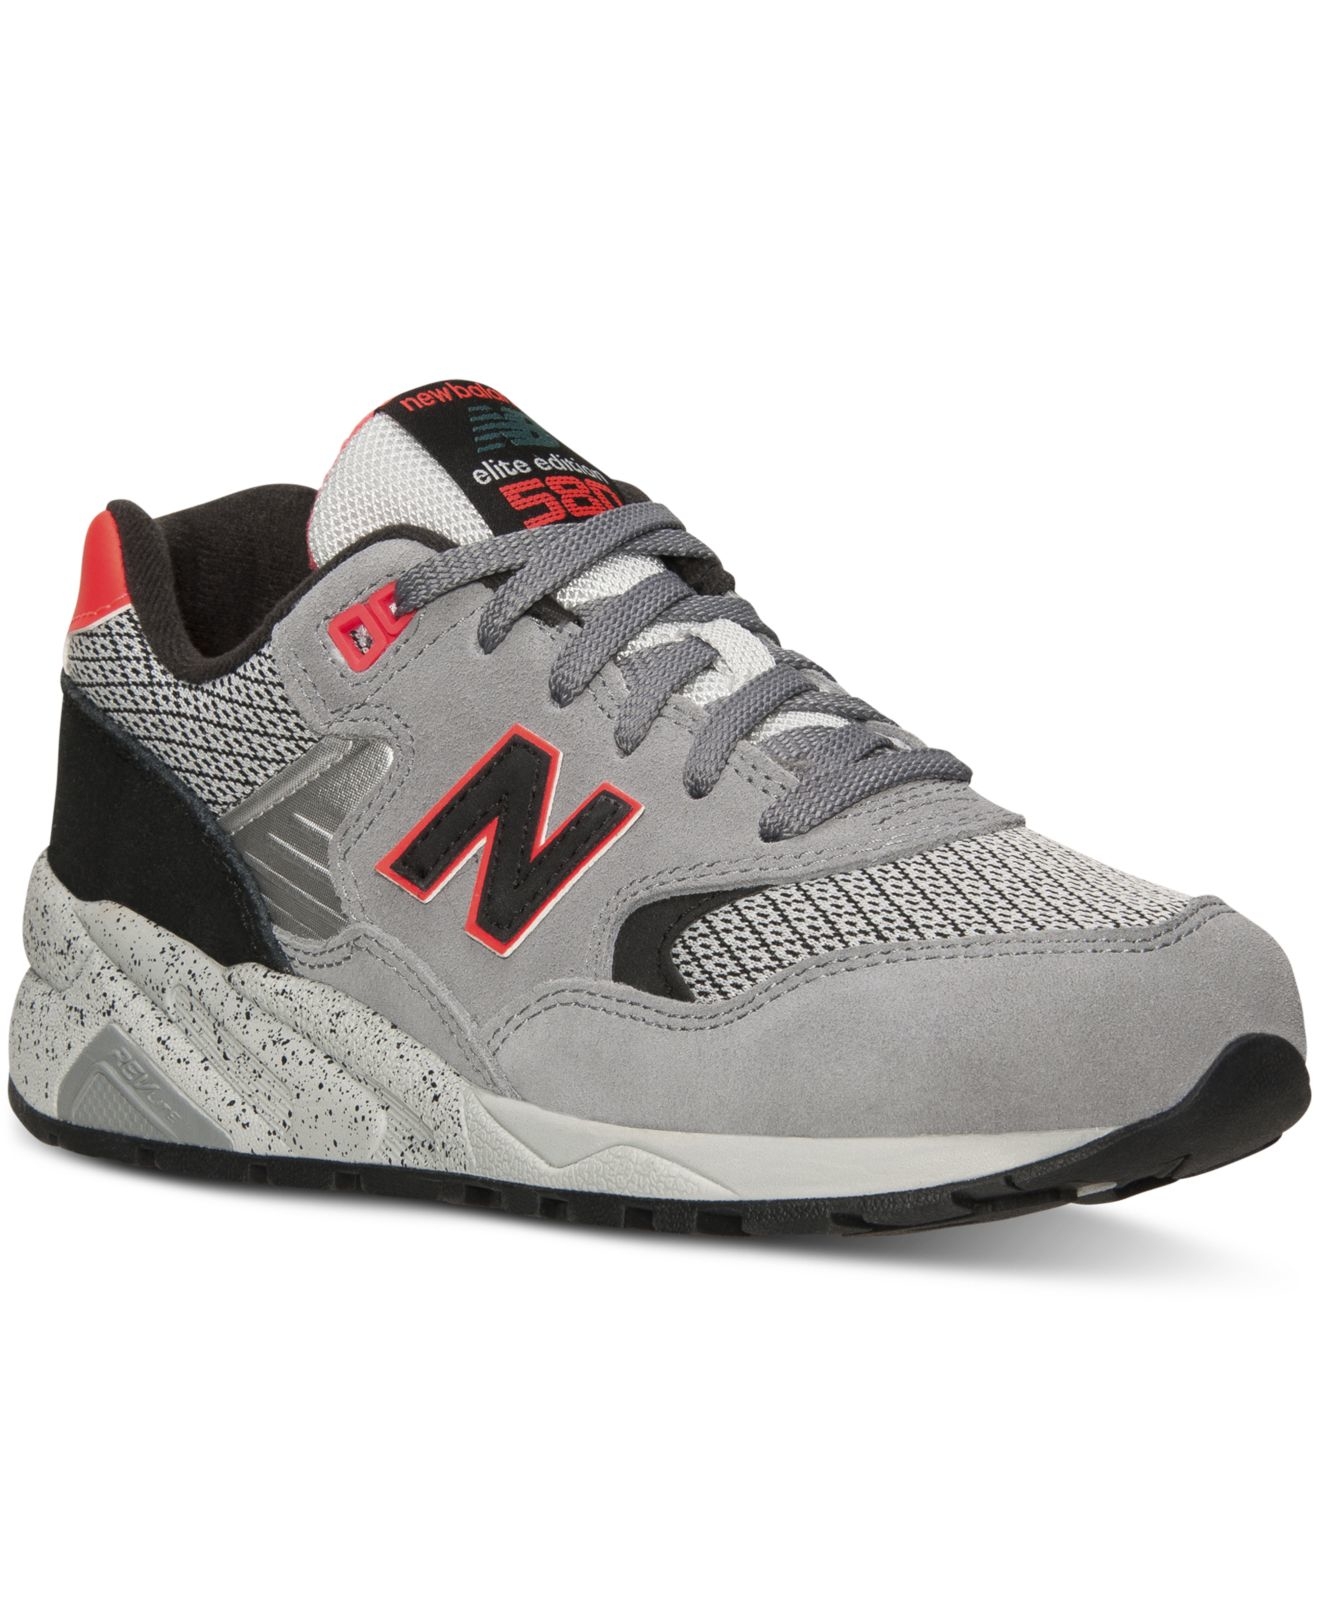 New balance fashion line